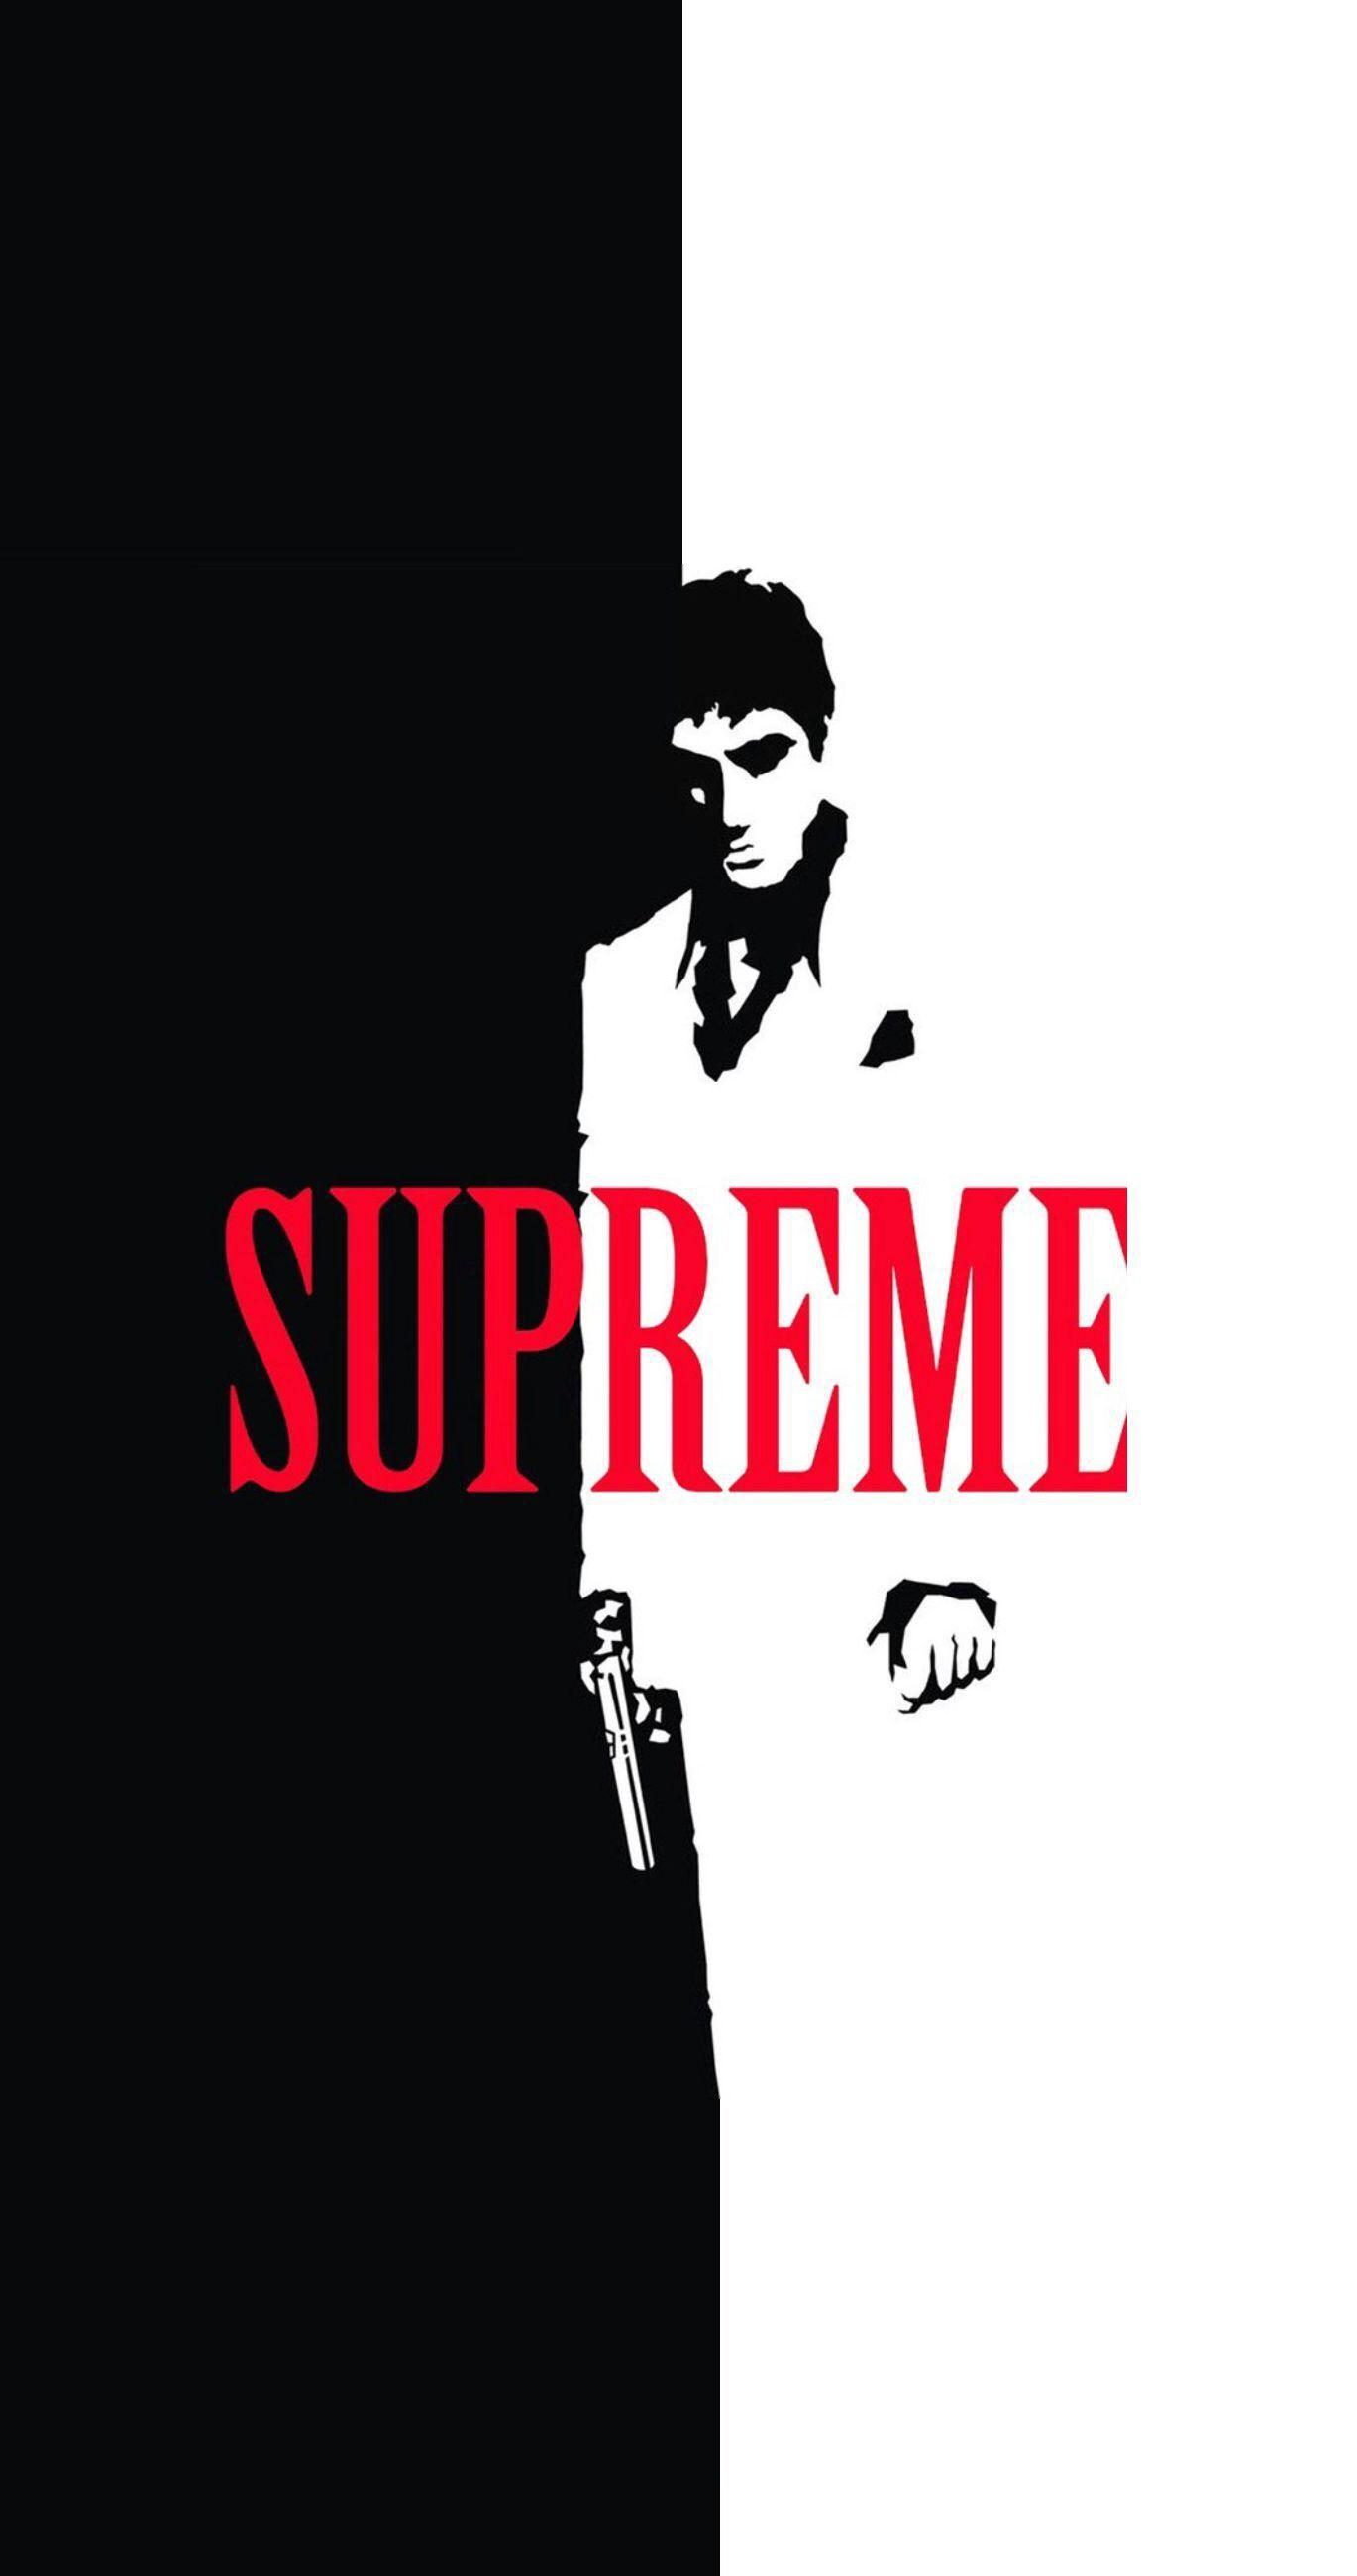 Scarface x Supreme Split IPhone Wallpapers